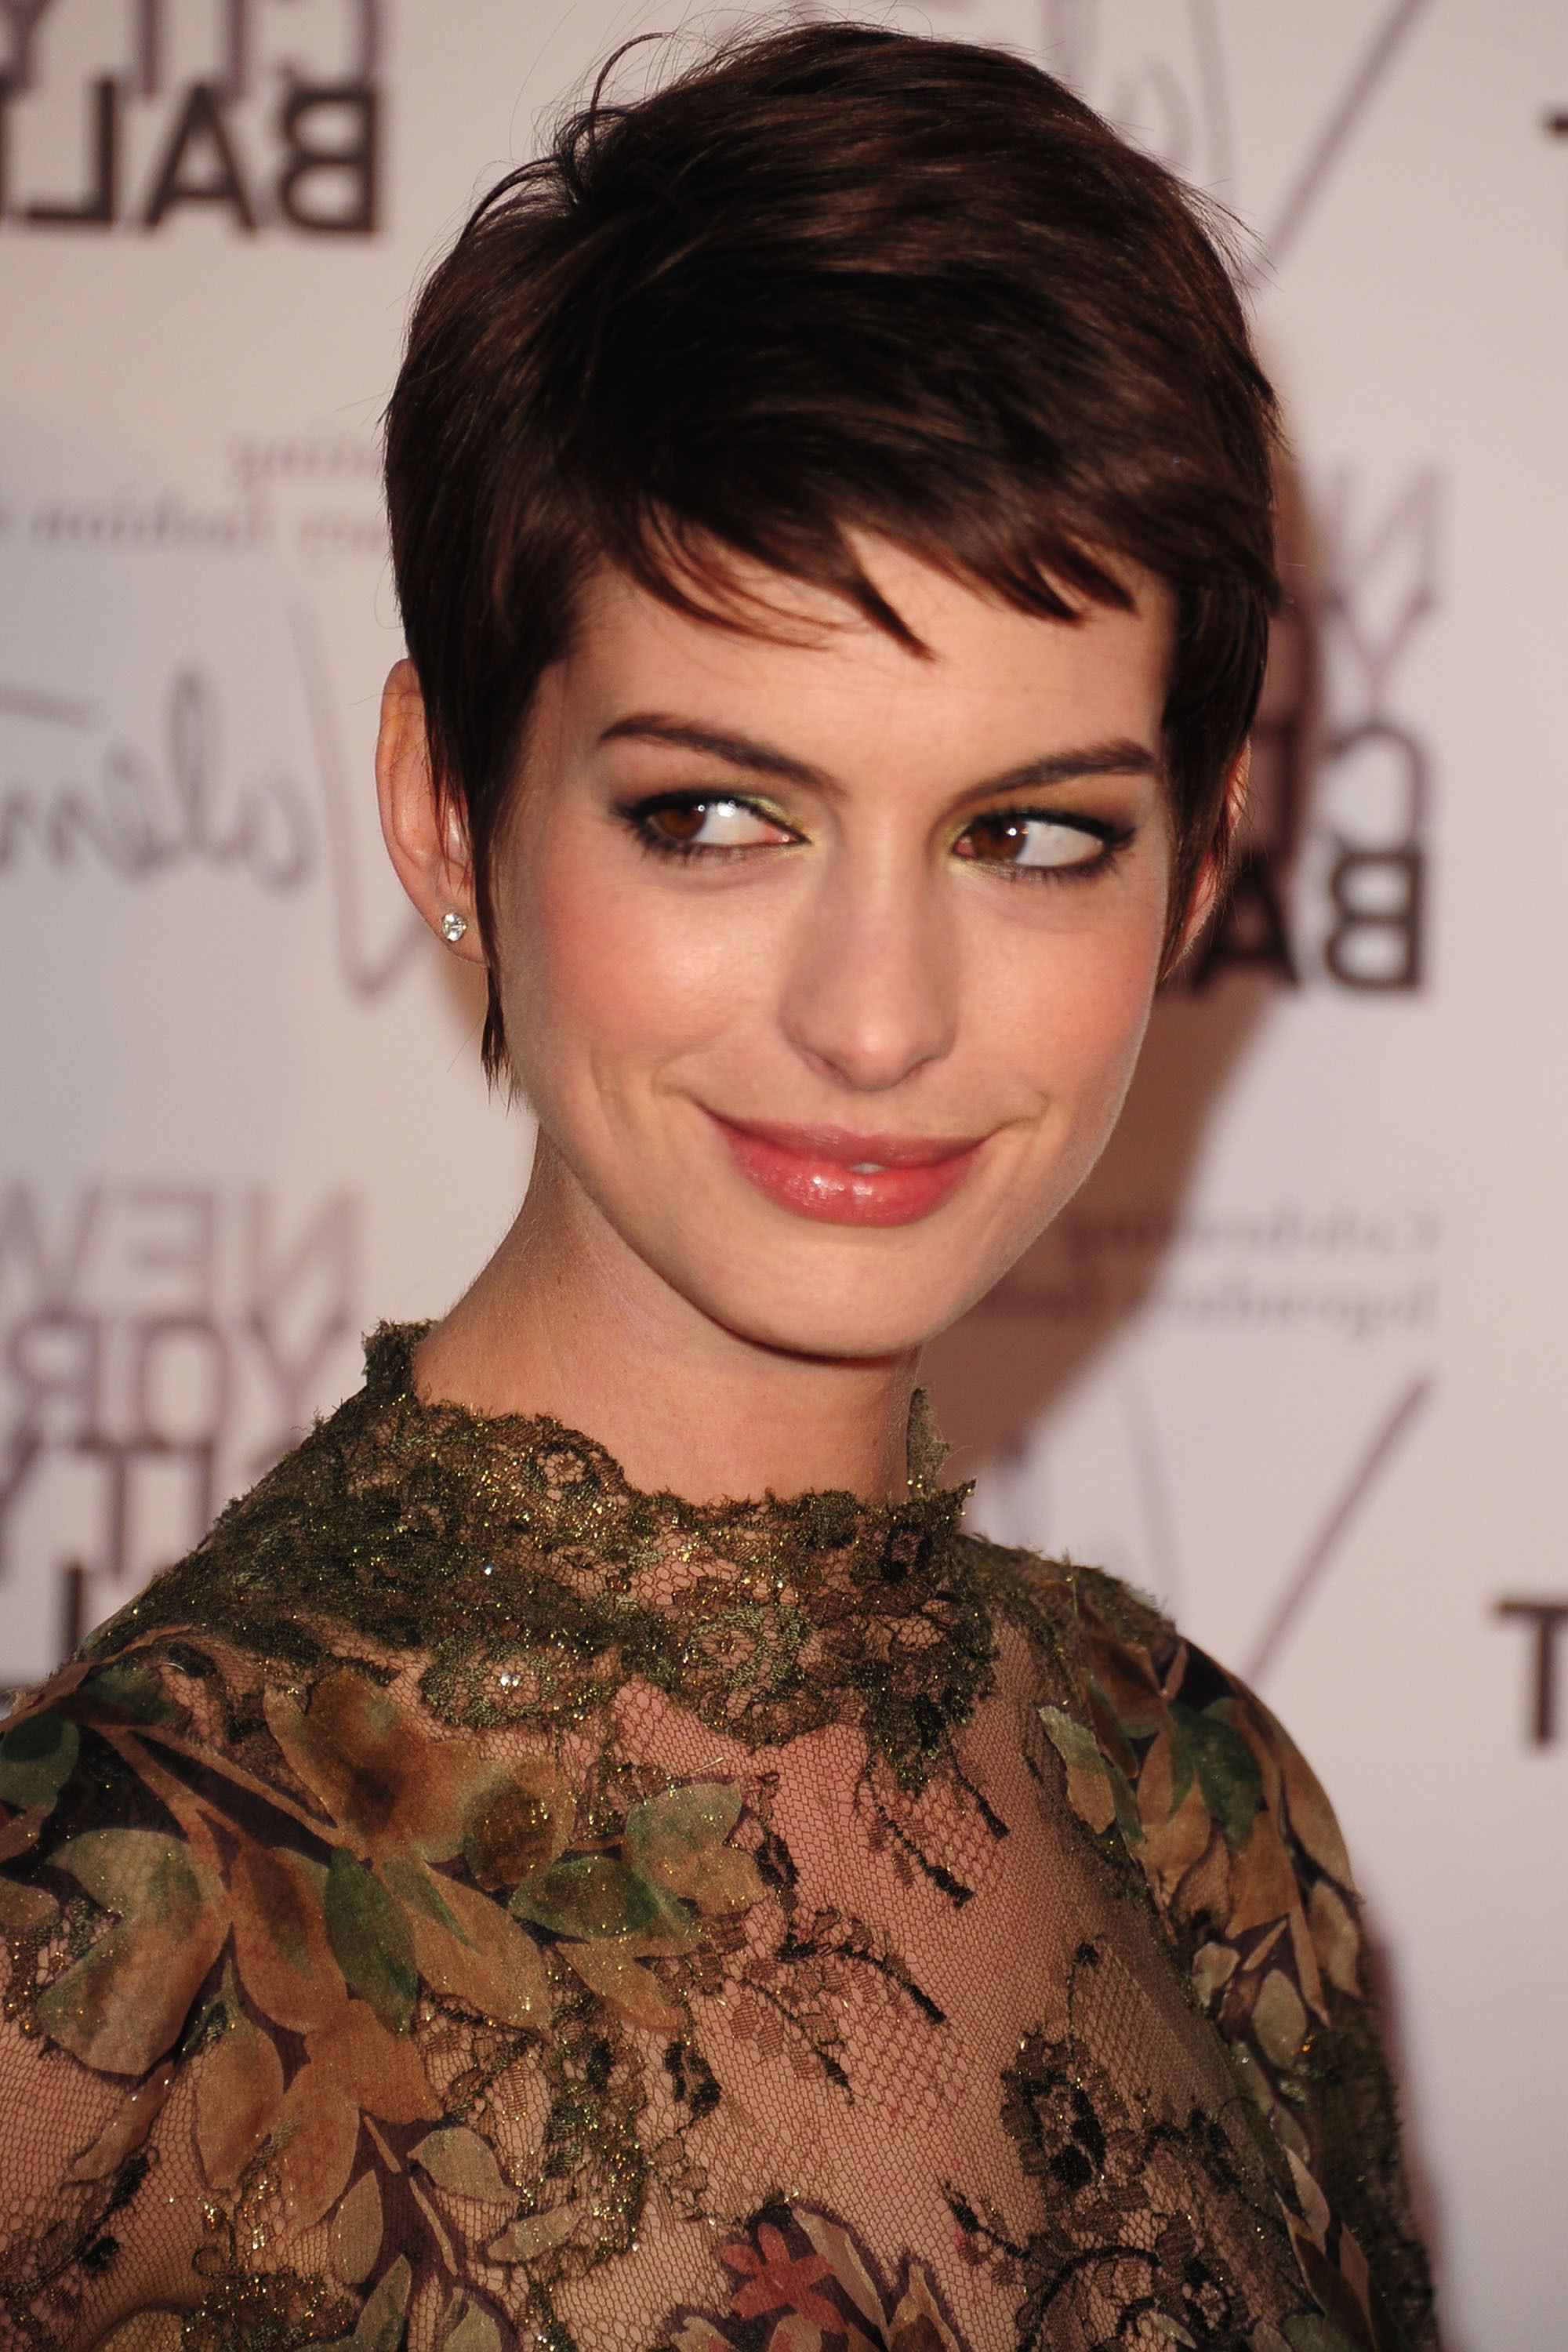 Anne Hathaway Very Short Hairstyle | Haircuts And Hair Styles I Love Pertaining To Anne Hathaway Short Hairstyles (Gallery 10 of 25)